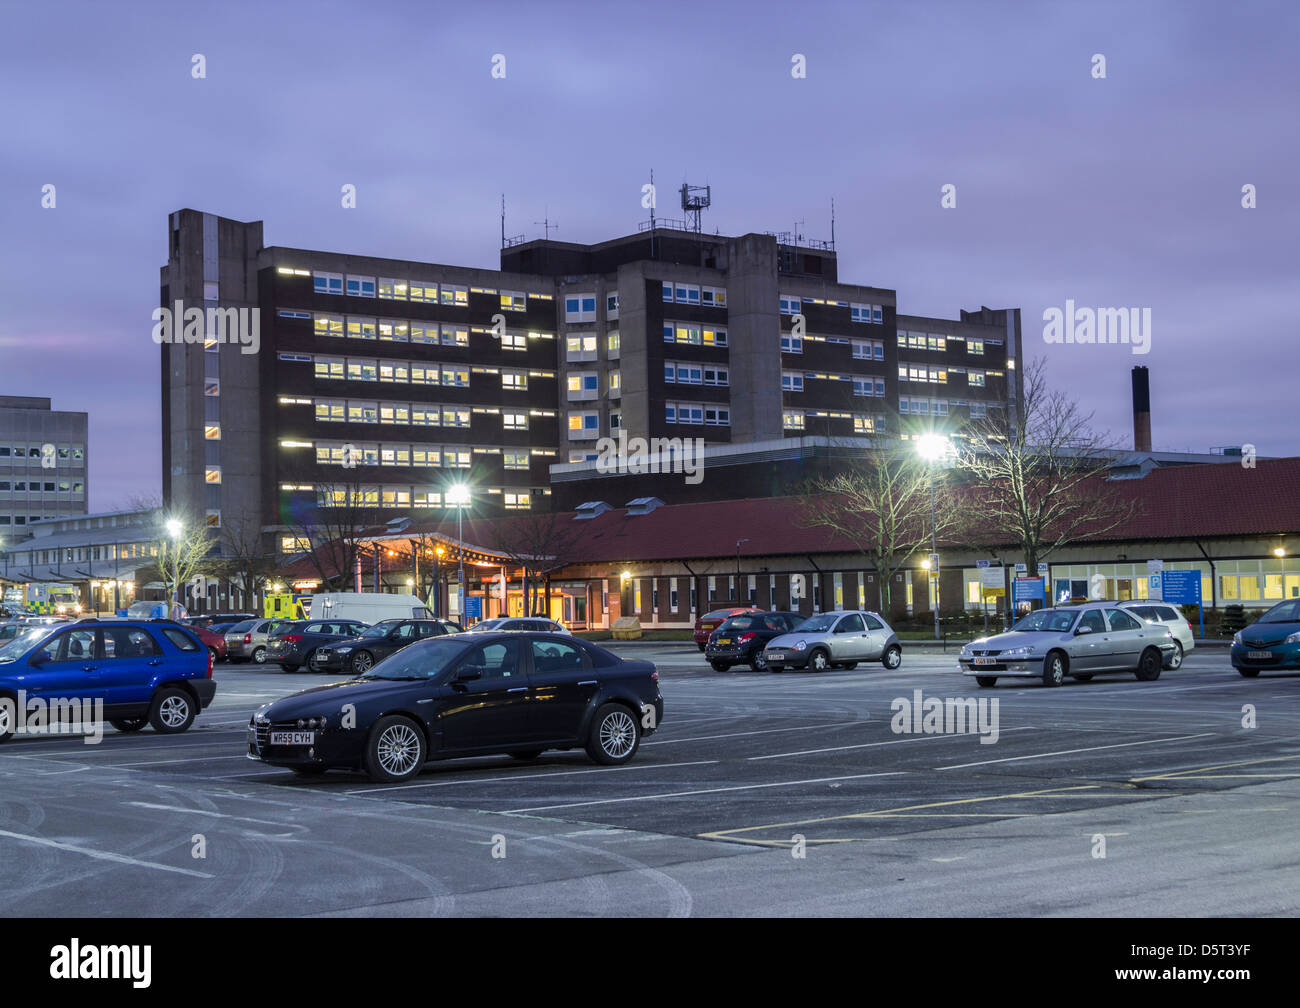 North Tees Hospital at Hardwick near Stockton on Tees, England, UK - Stock Image